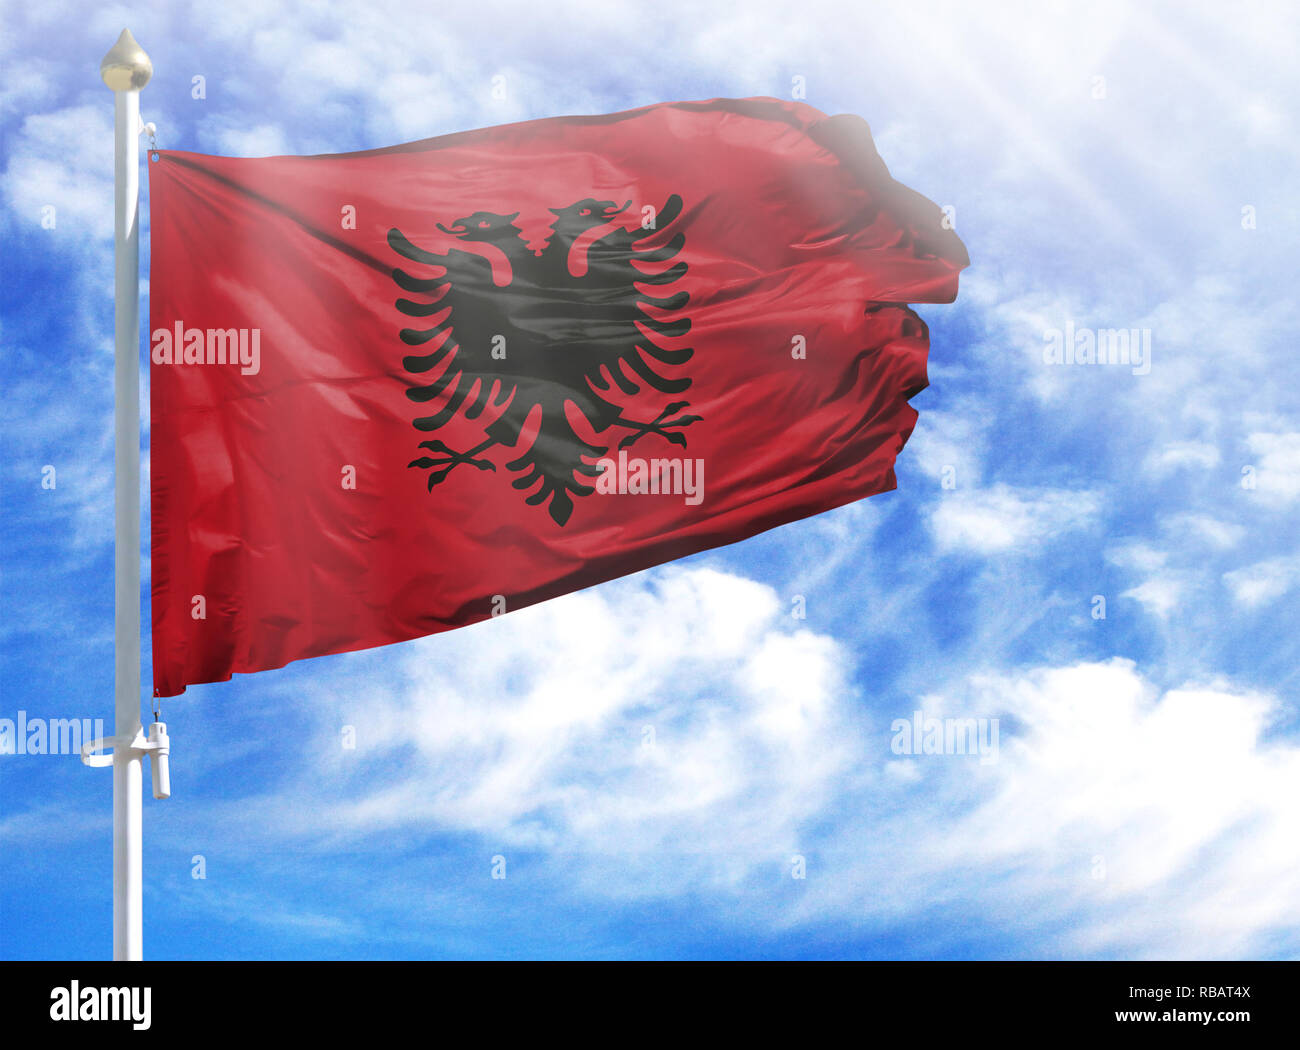 National flag of Albania on a flagpole in front of blue sky. - Stock Image